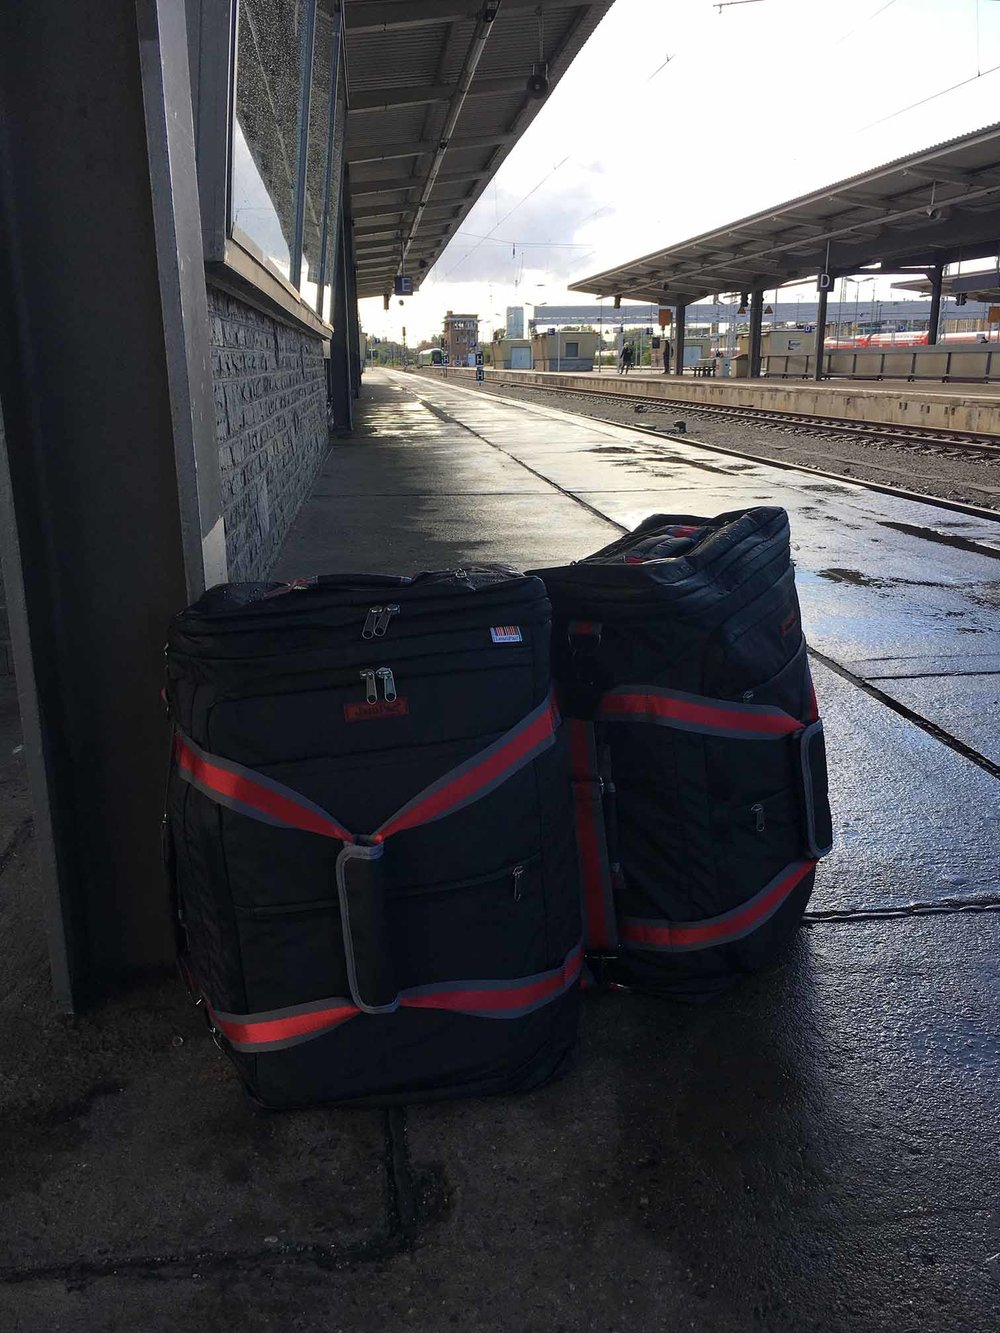 The stylish JamPac® keeps you mobile. Suitable for all types travels. Rugged use like here in Berlin? No worries, the waterproof exterior can take on the rain and proves to be an easy clean!